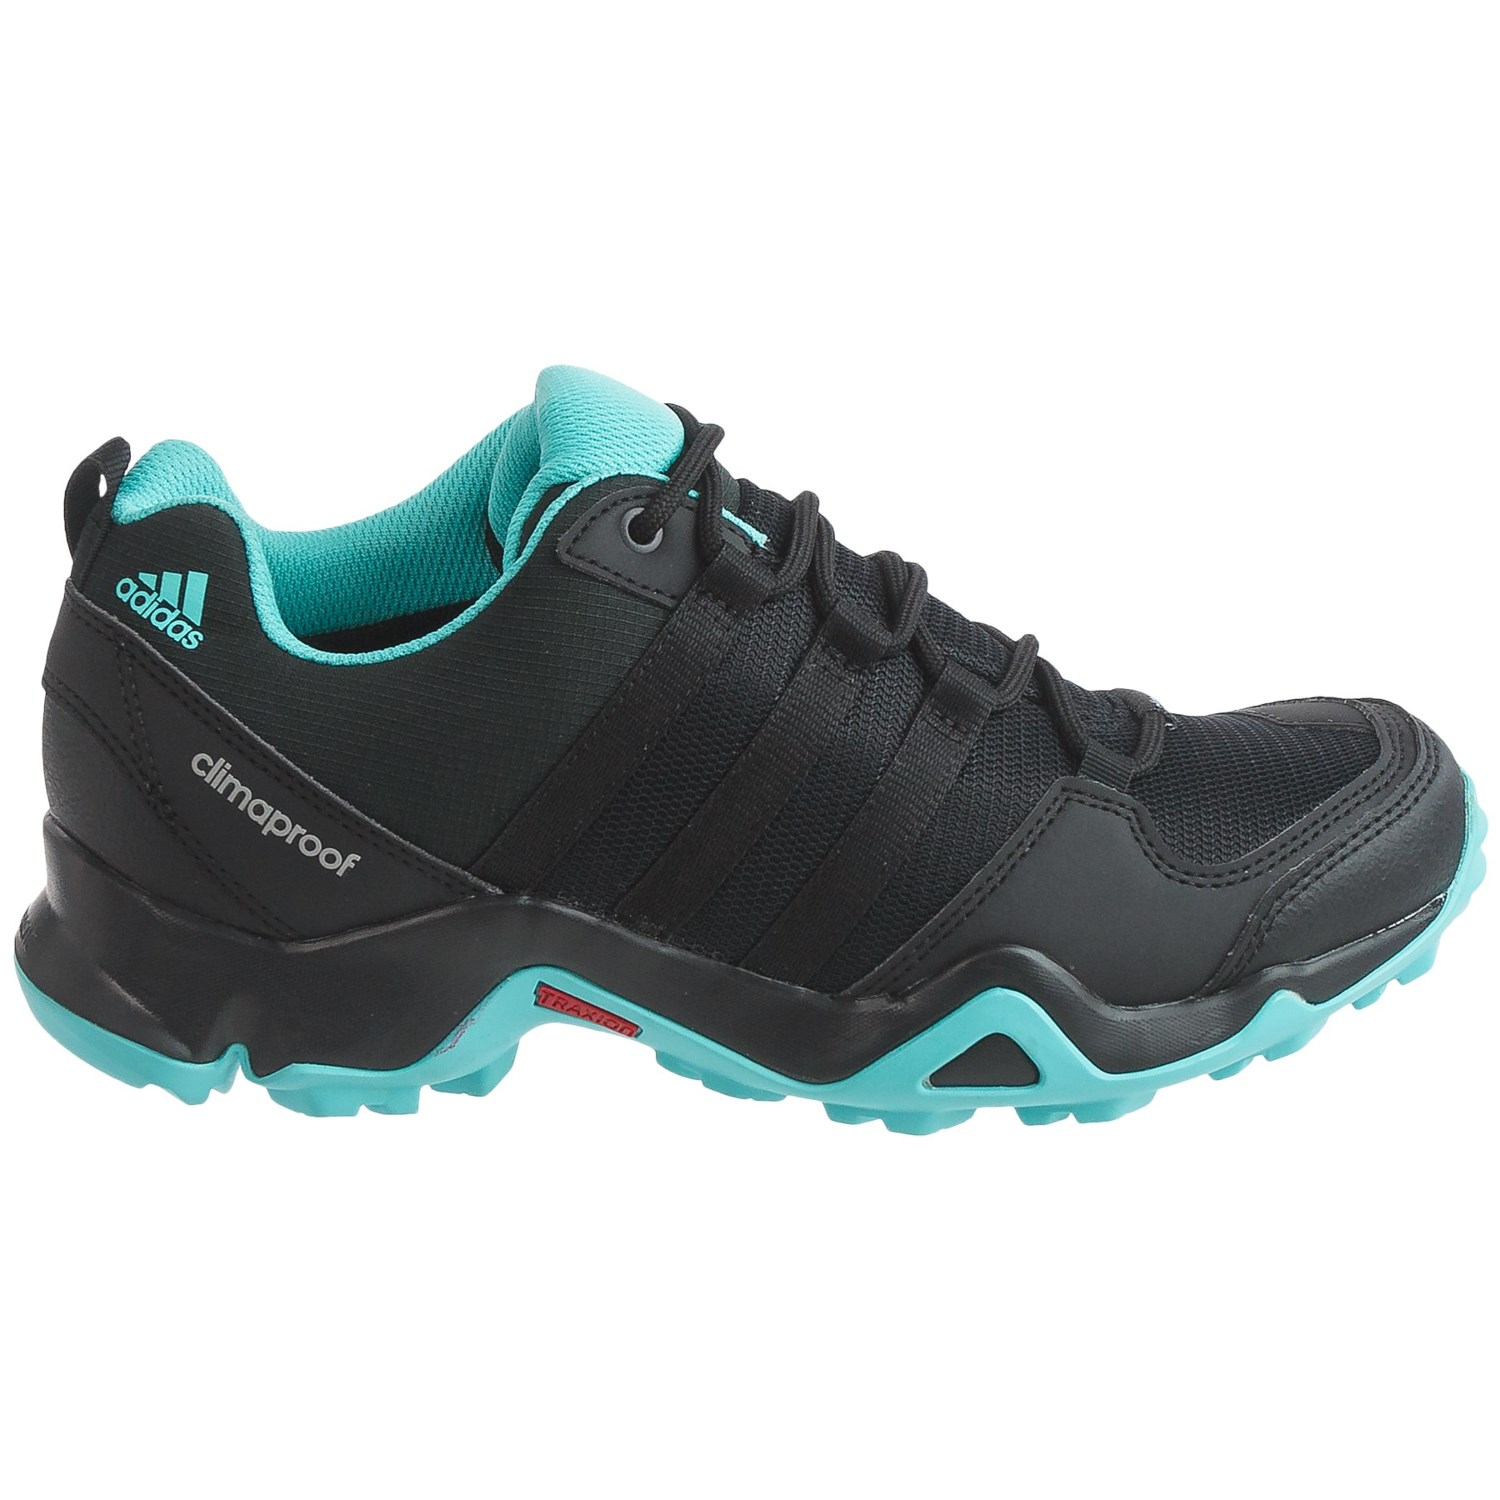 adidas AX2 ClimaProof® Hiking Shoes - Waterproof (For Women)